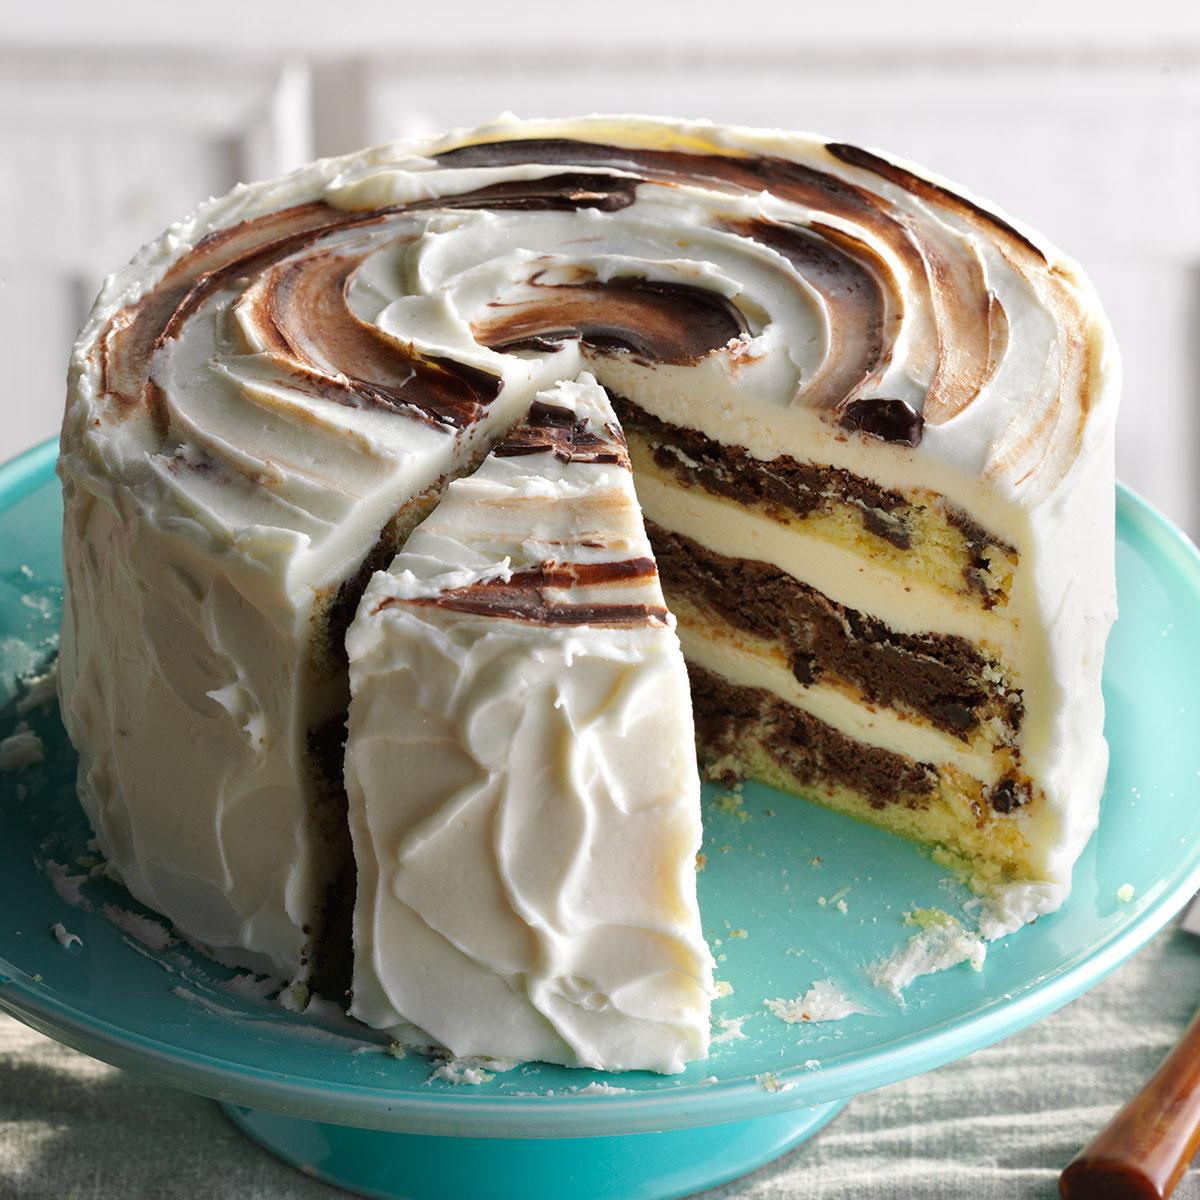 How To Make A Marble Cake From Scratch